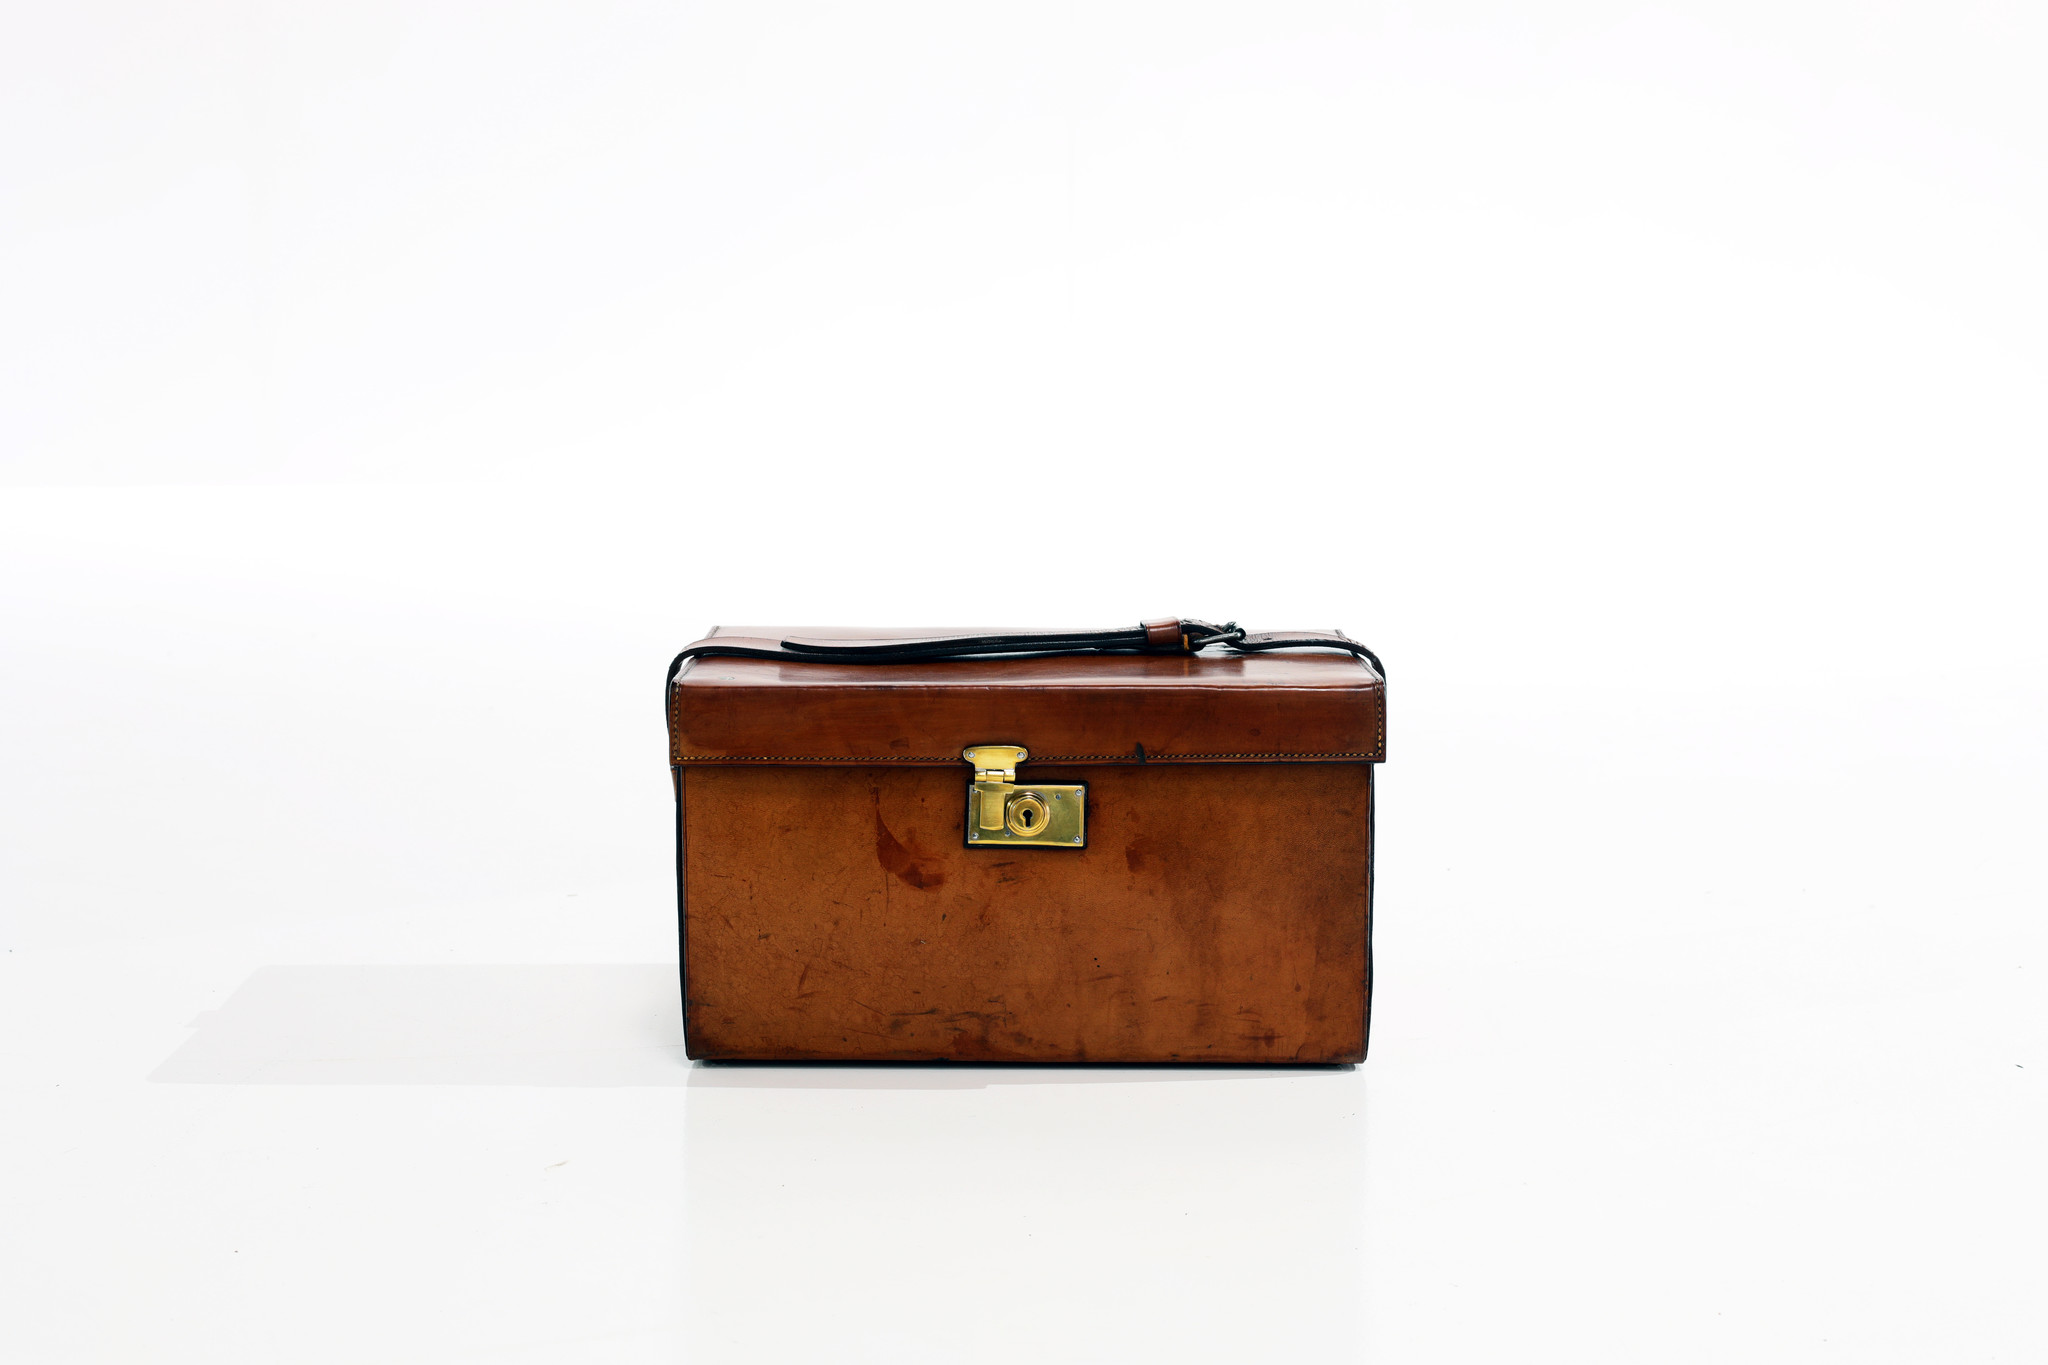 Exclusive Moynat picnic set in leather case circa 1910